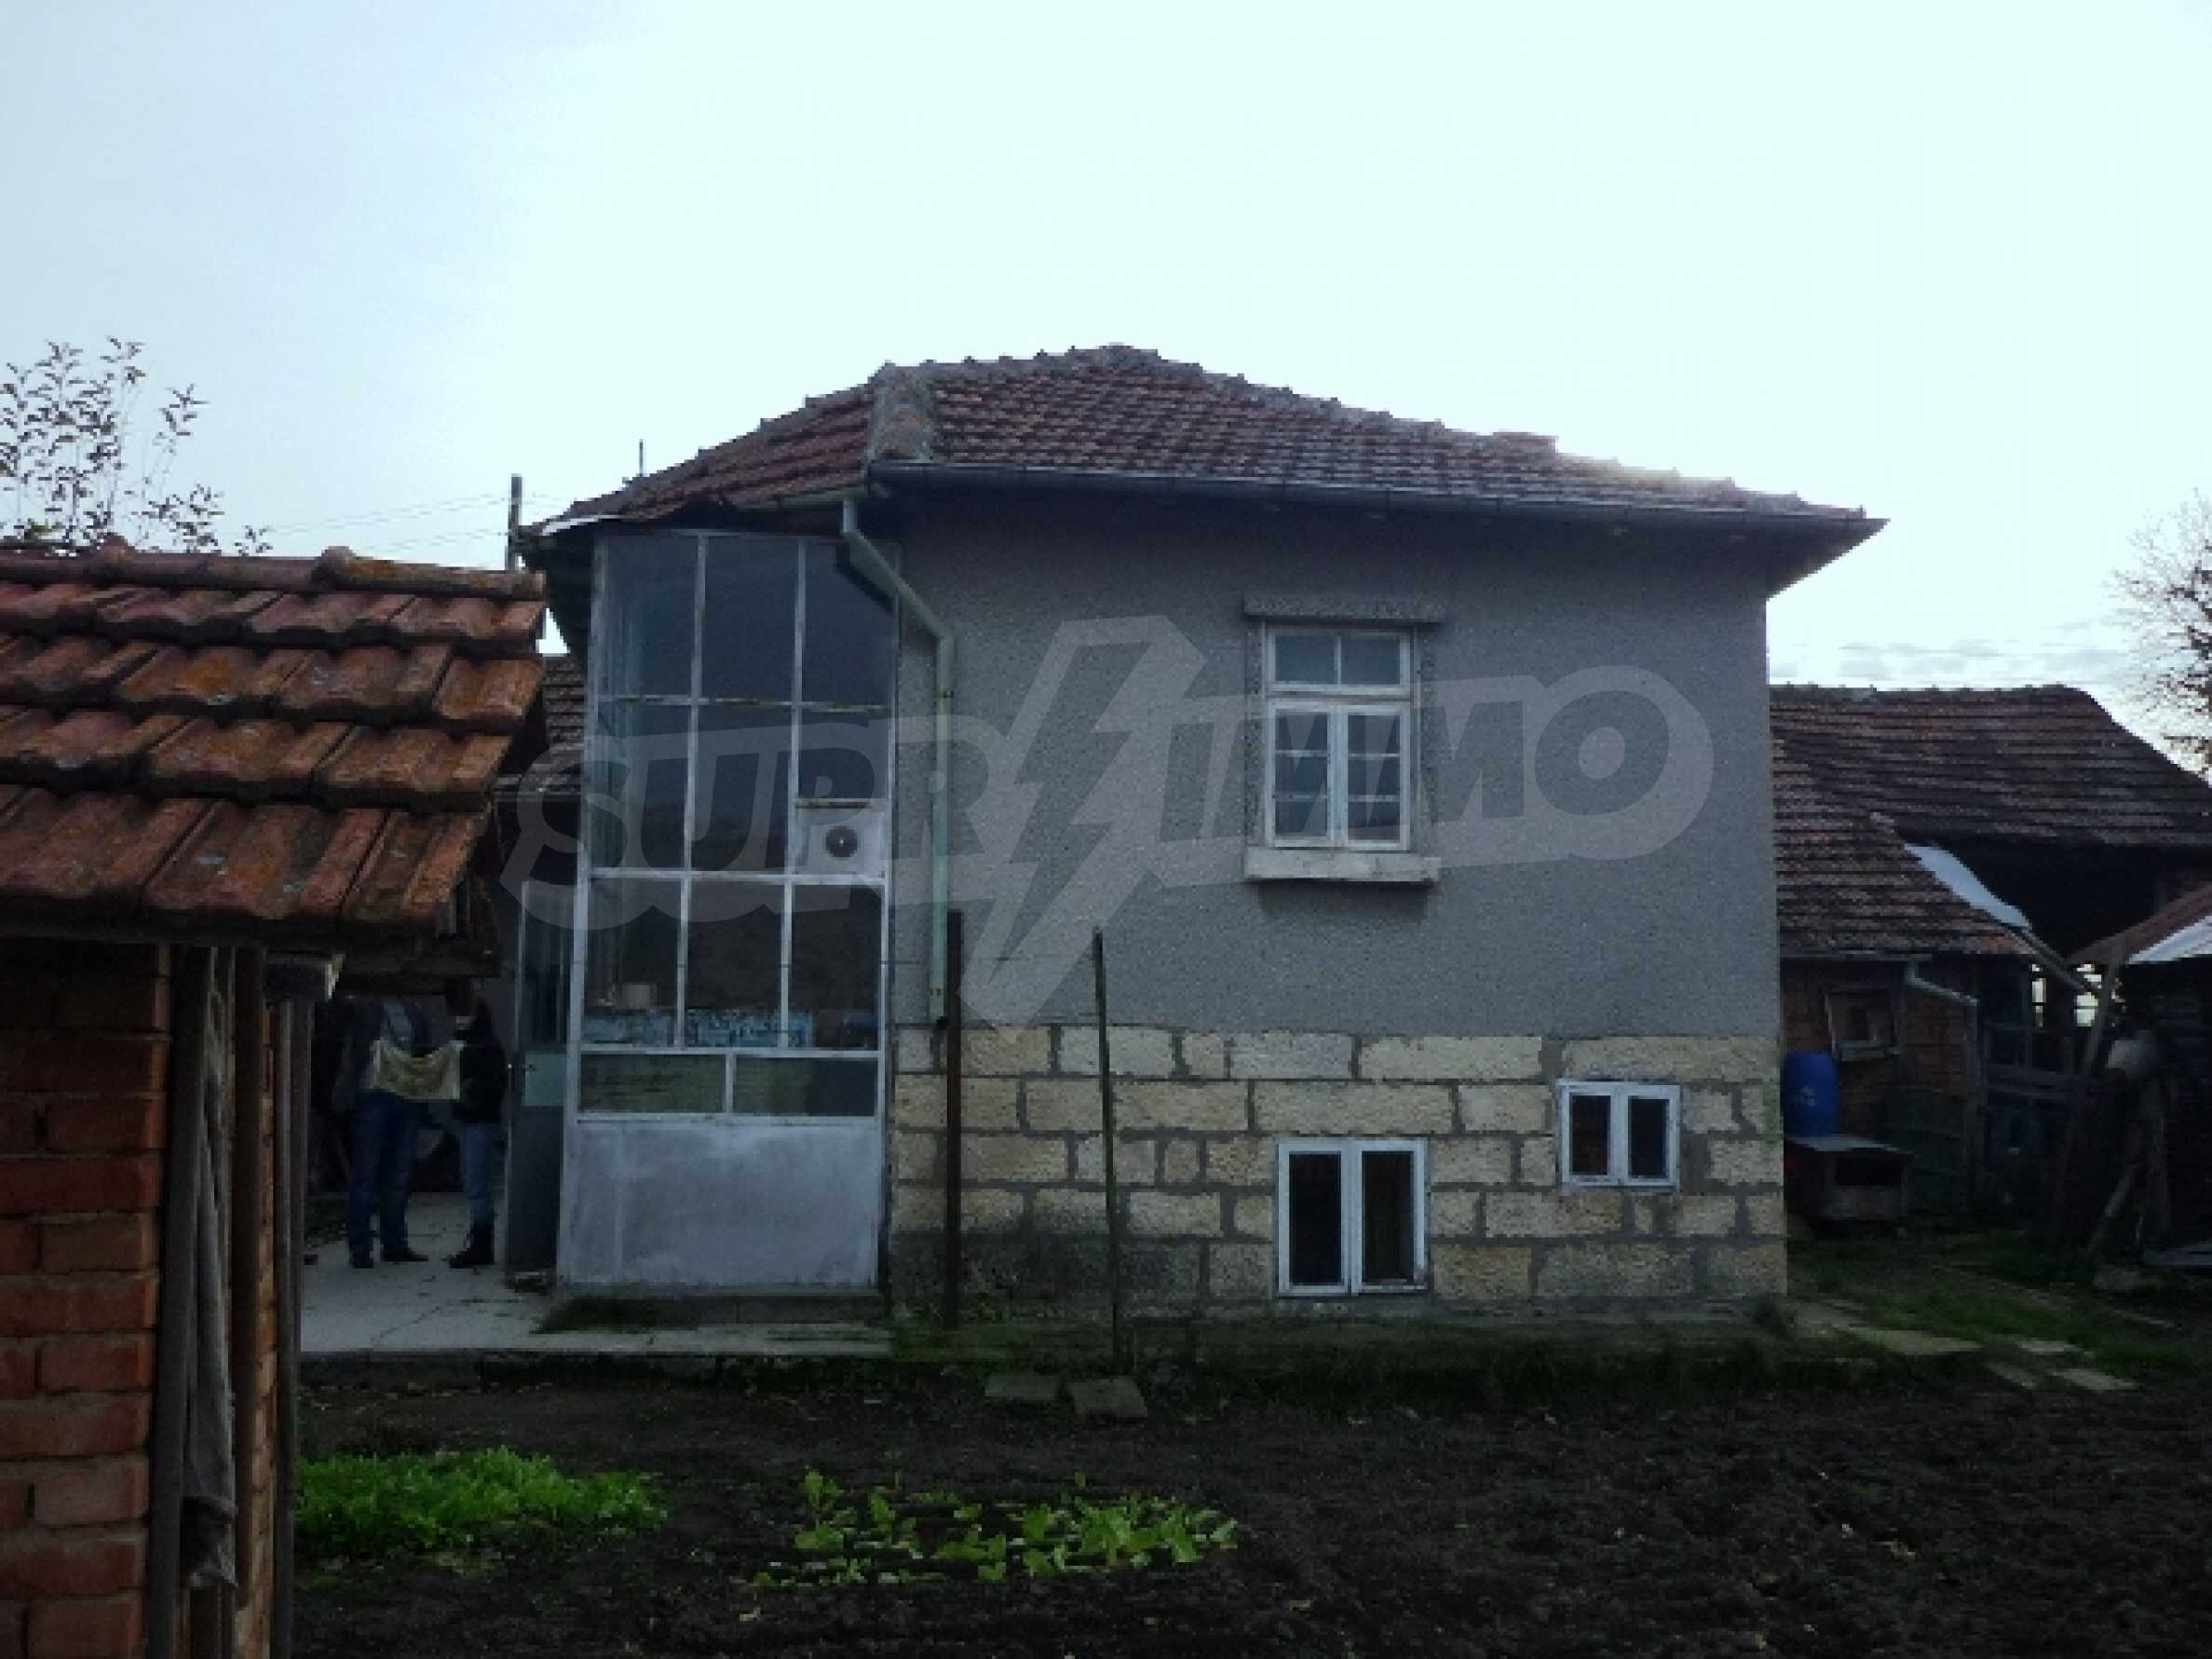 One-storey 5-bedroom house in Ostritsa village, Ruse district